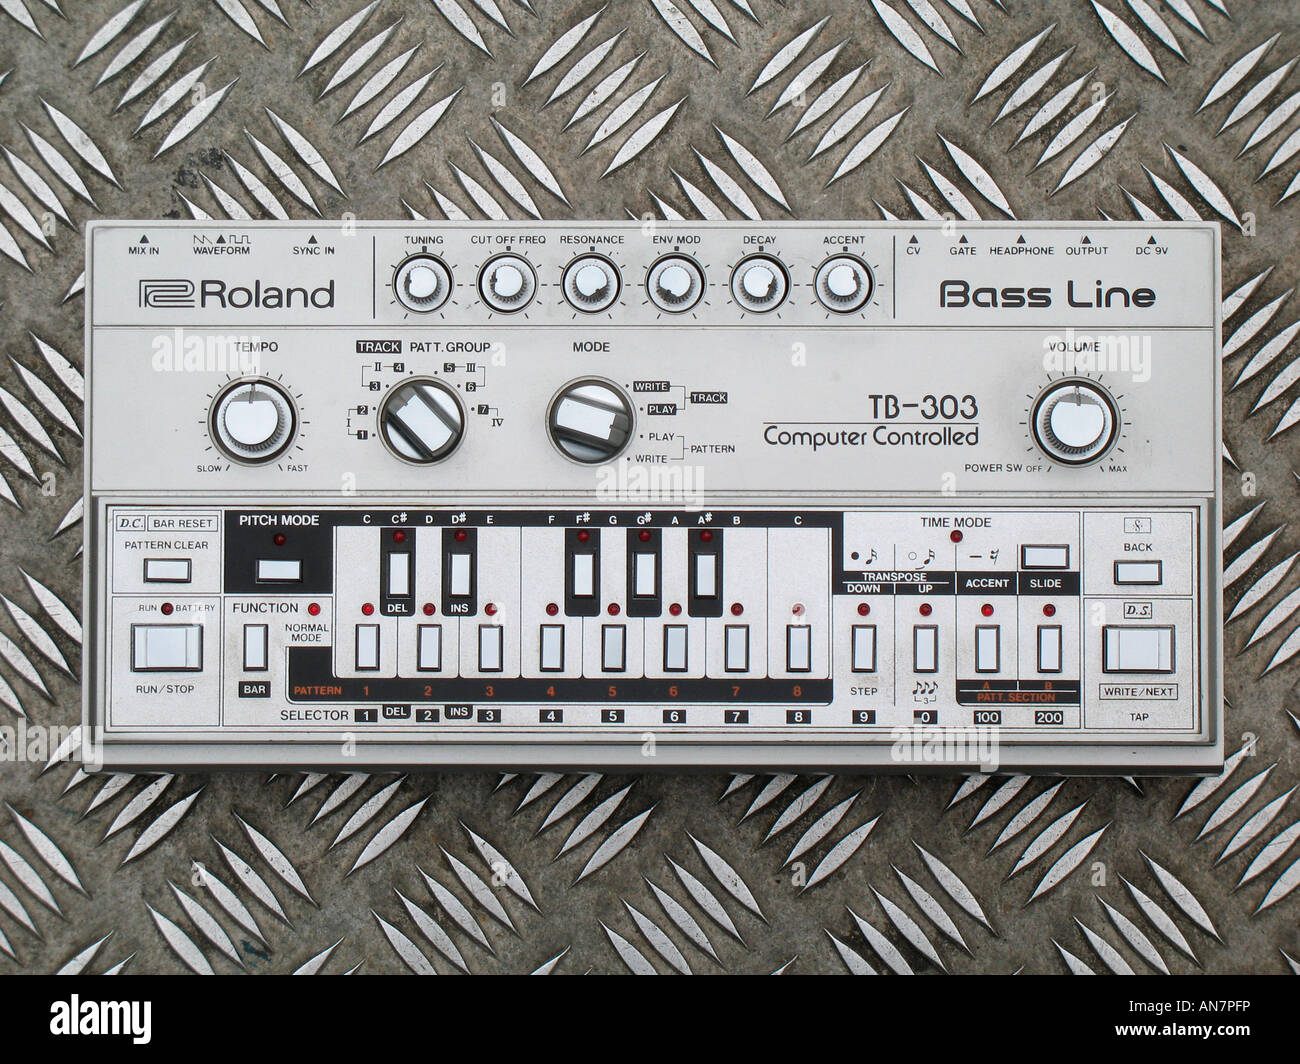 Roland TB 303 Computer Controlled Bass Line the iconic instrument that defined the sound of Acid House music - Stock Image